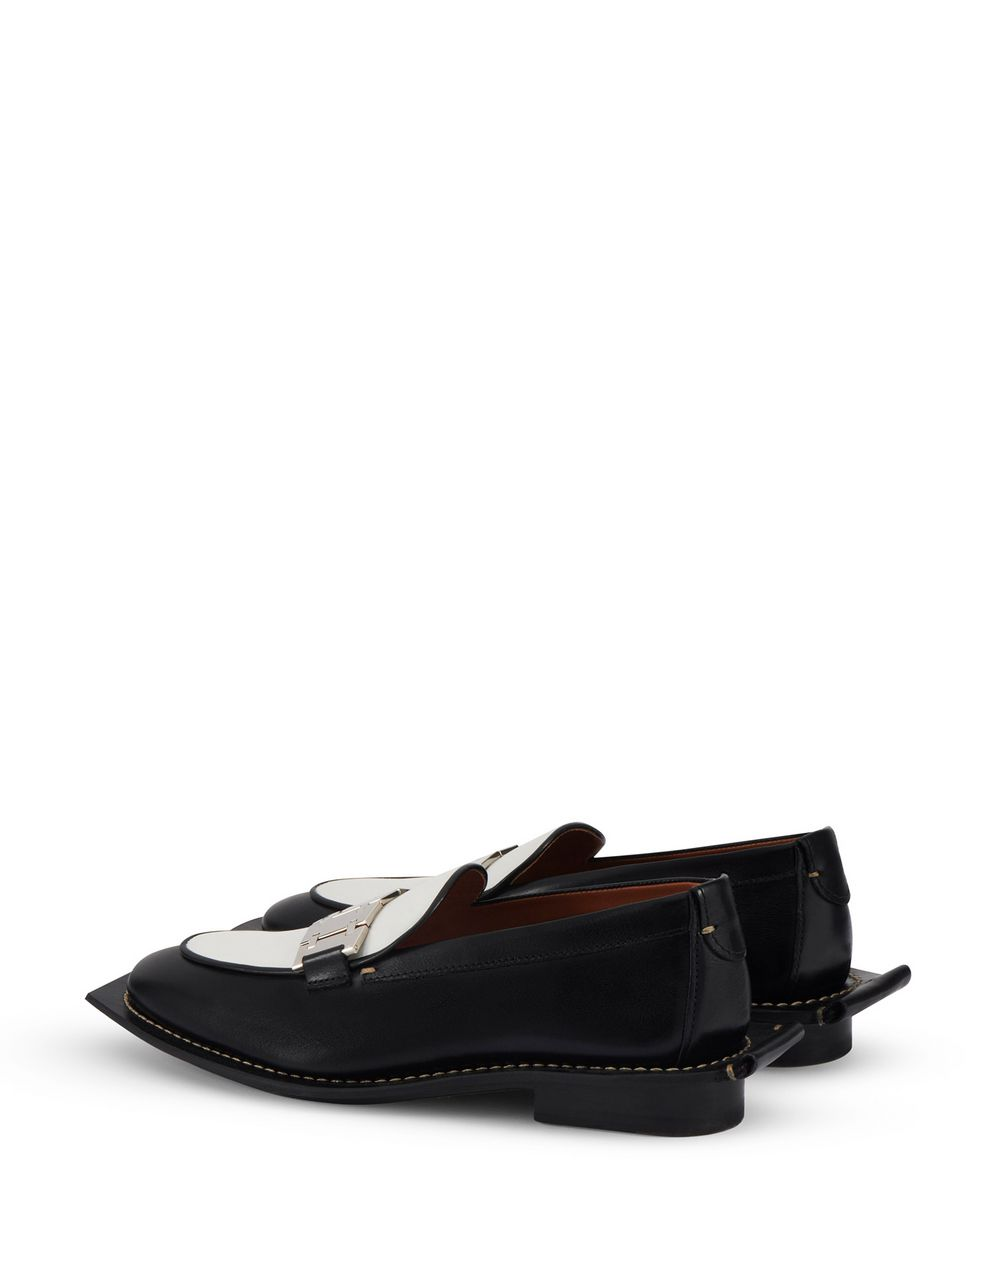 LOAFER WITH GOURMETTE - Lanvin